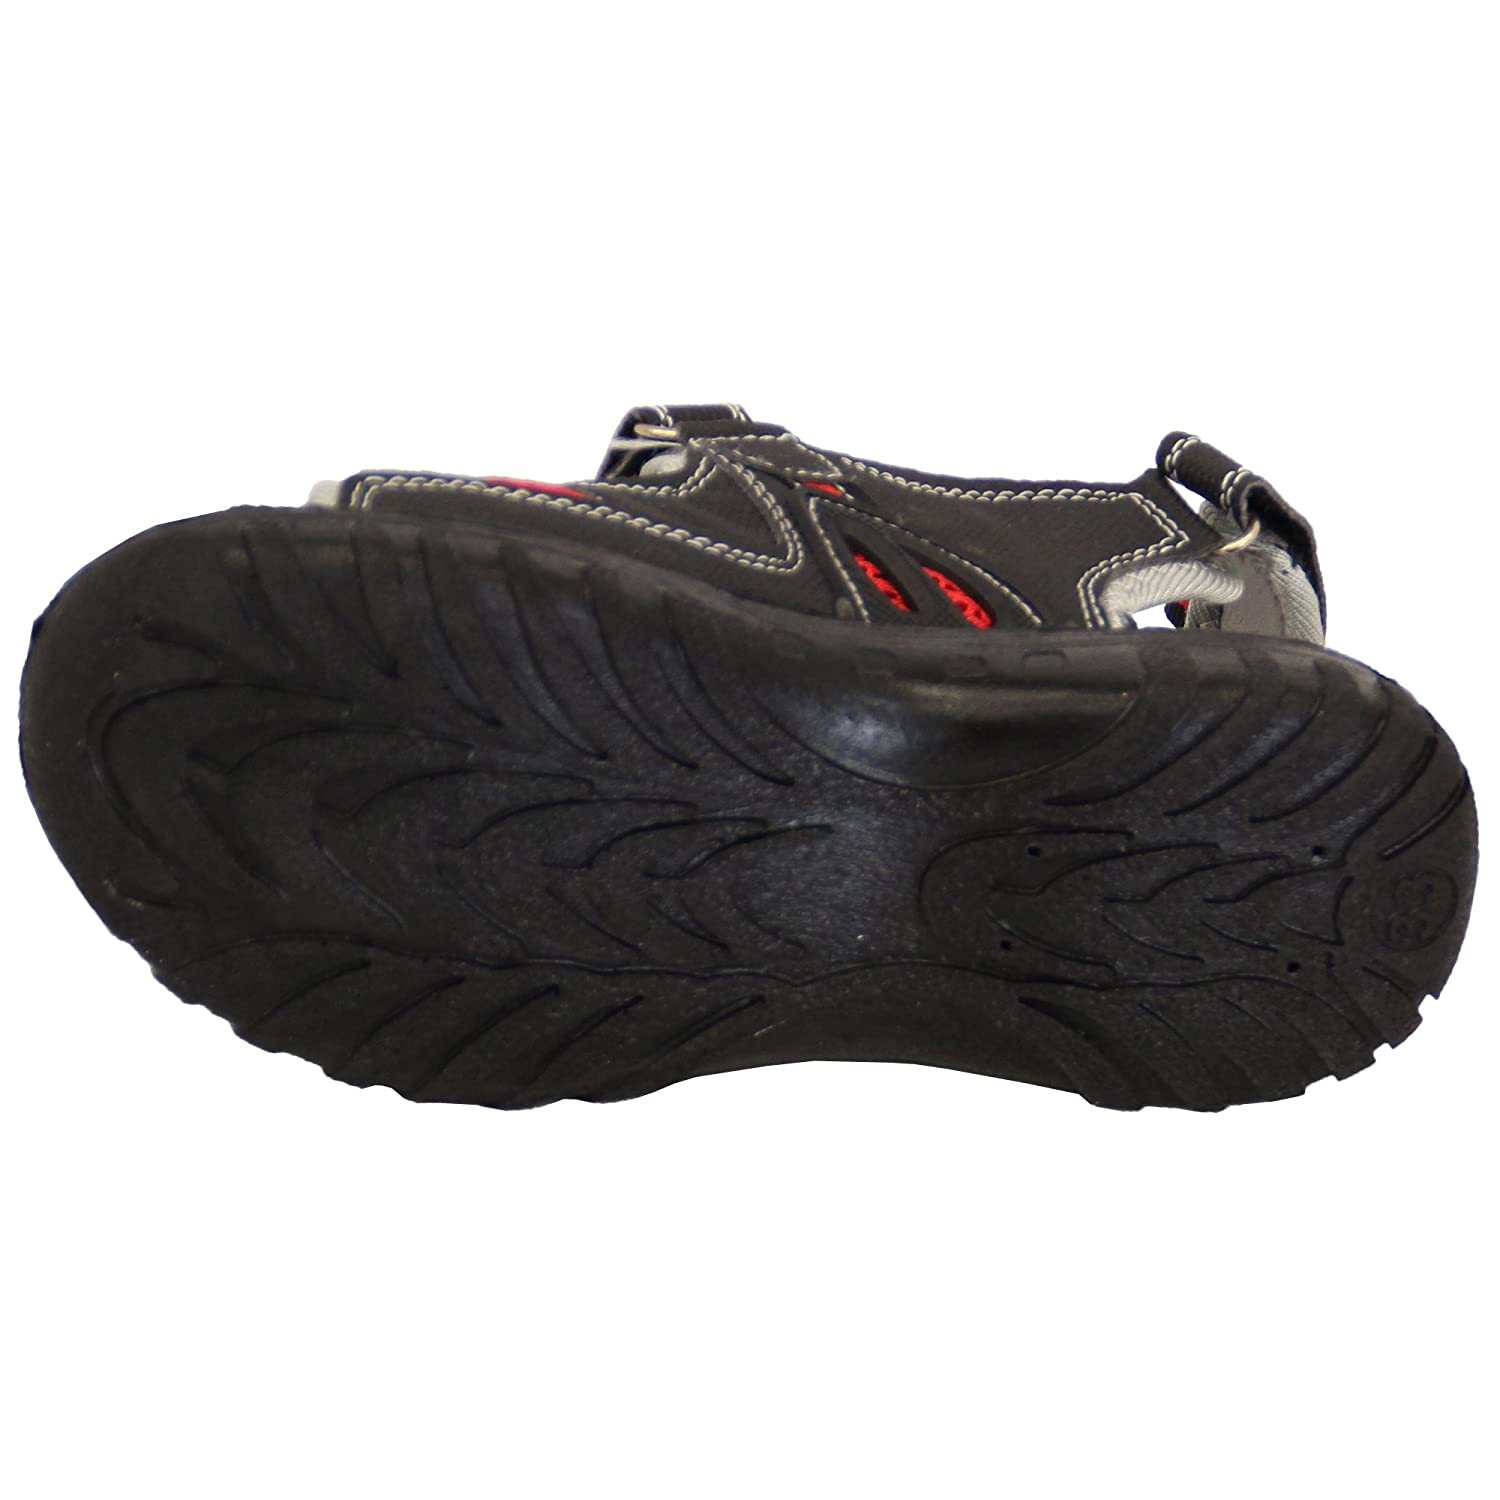 f9ded4f6e53 Gezer Boys Sandals Troy Black UK 2.5 EU 35  Amazon.co.uk  Shoes   Bags